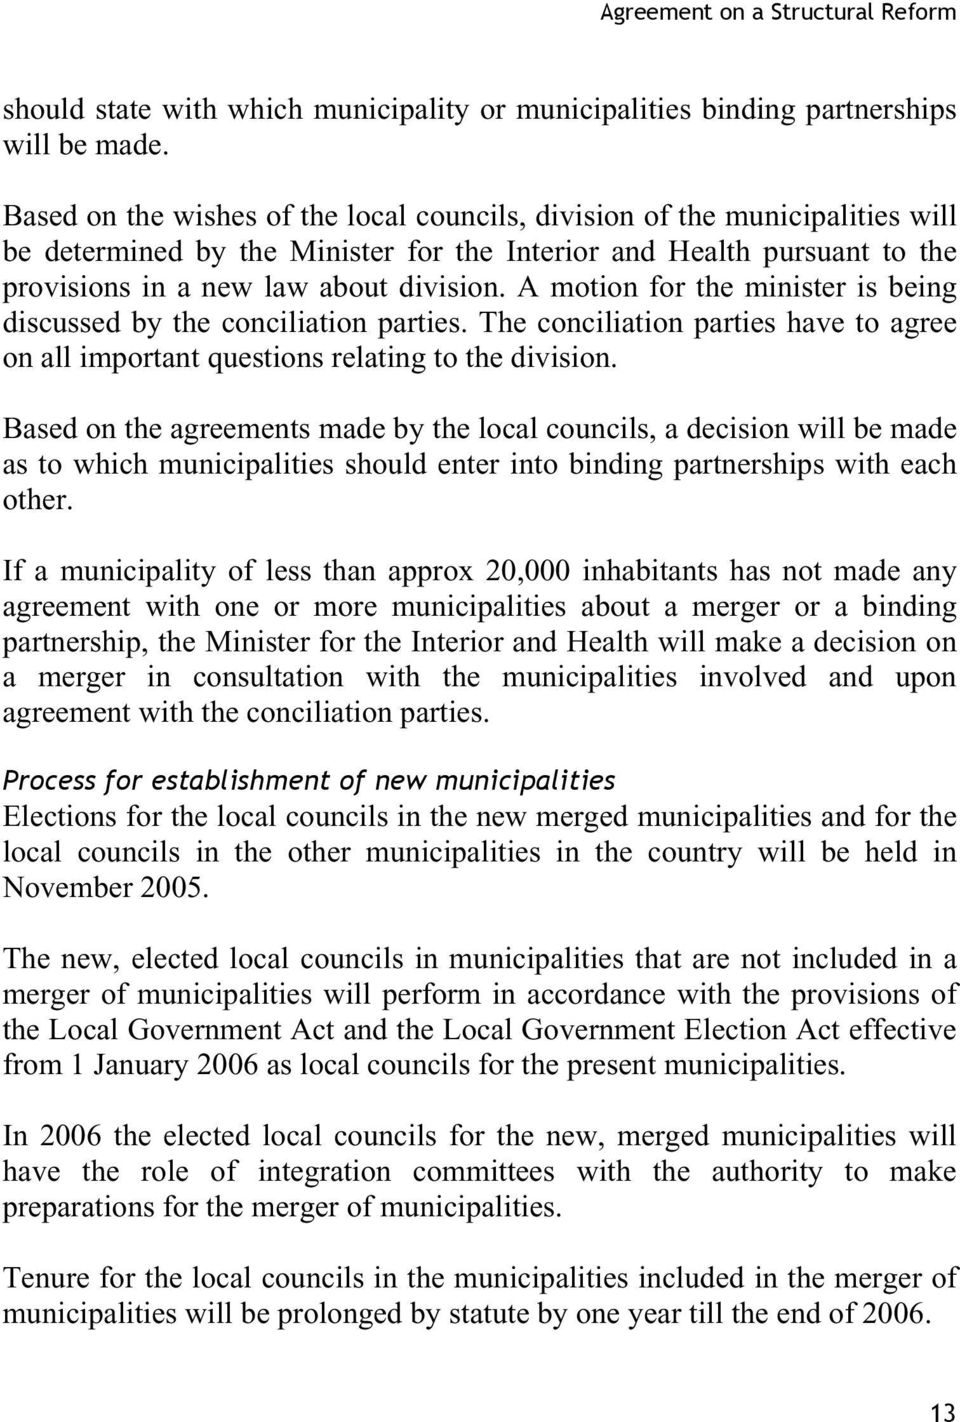 A motion for the minister is being discussed by the conciliation parties. The conciliation parties have to agree on all important questions relating to the division.